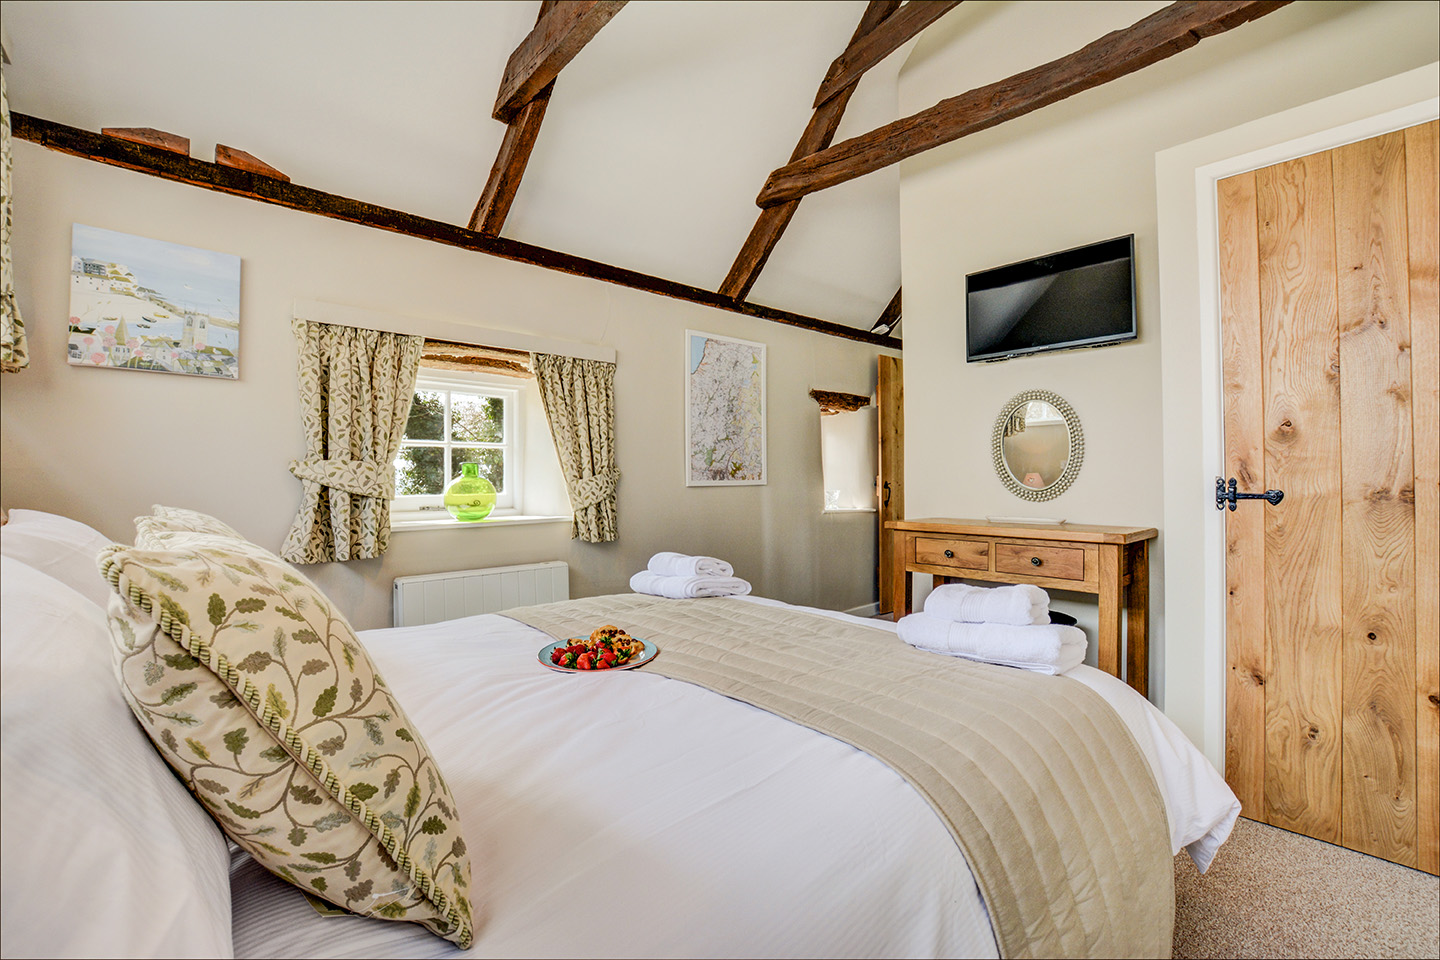 The bedroom at Jingles luxury self catering holiday cottage at Penrose Burden in North Cornwall near Bodmin Moor03.jpg